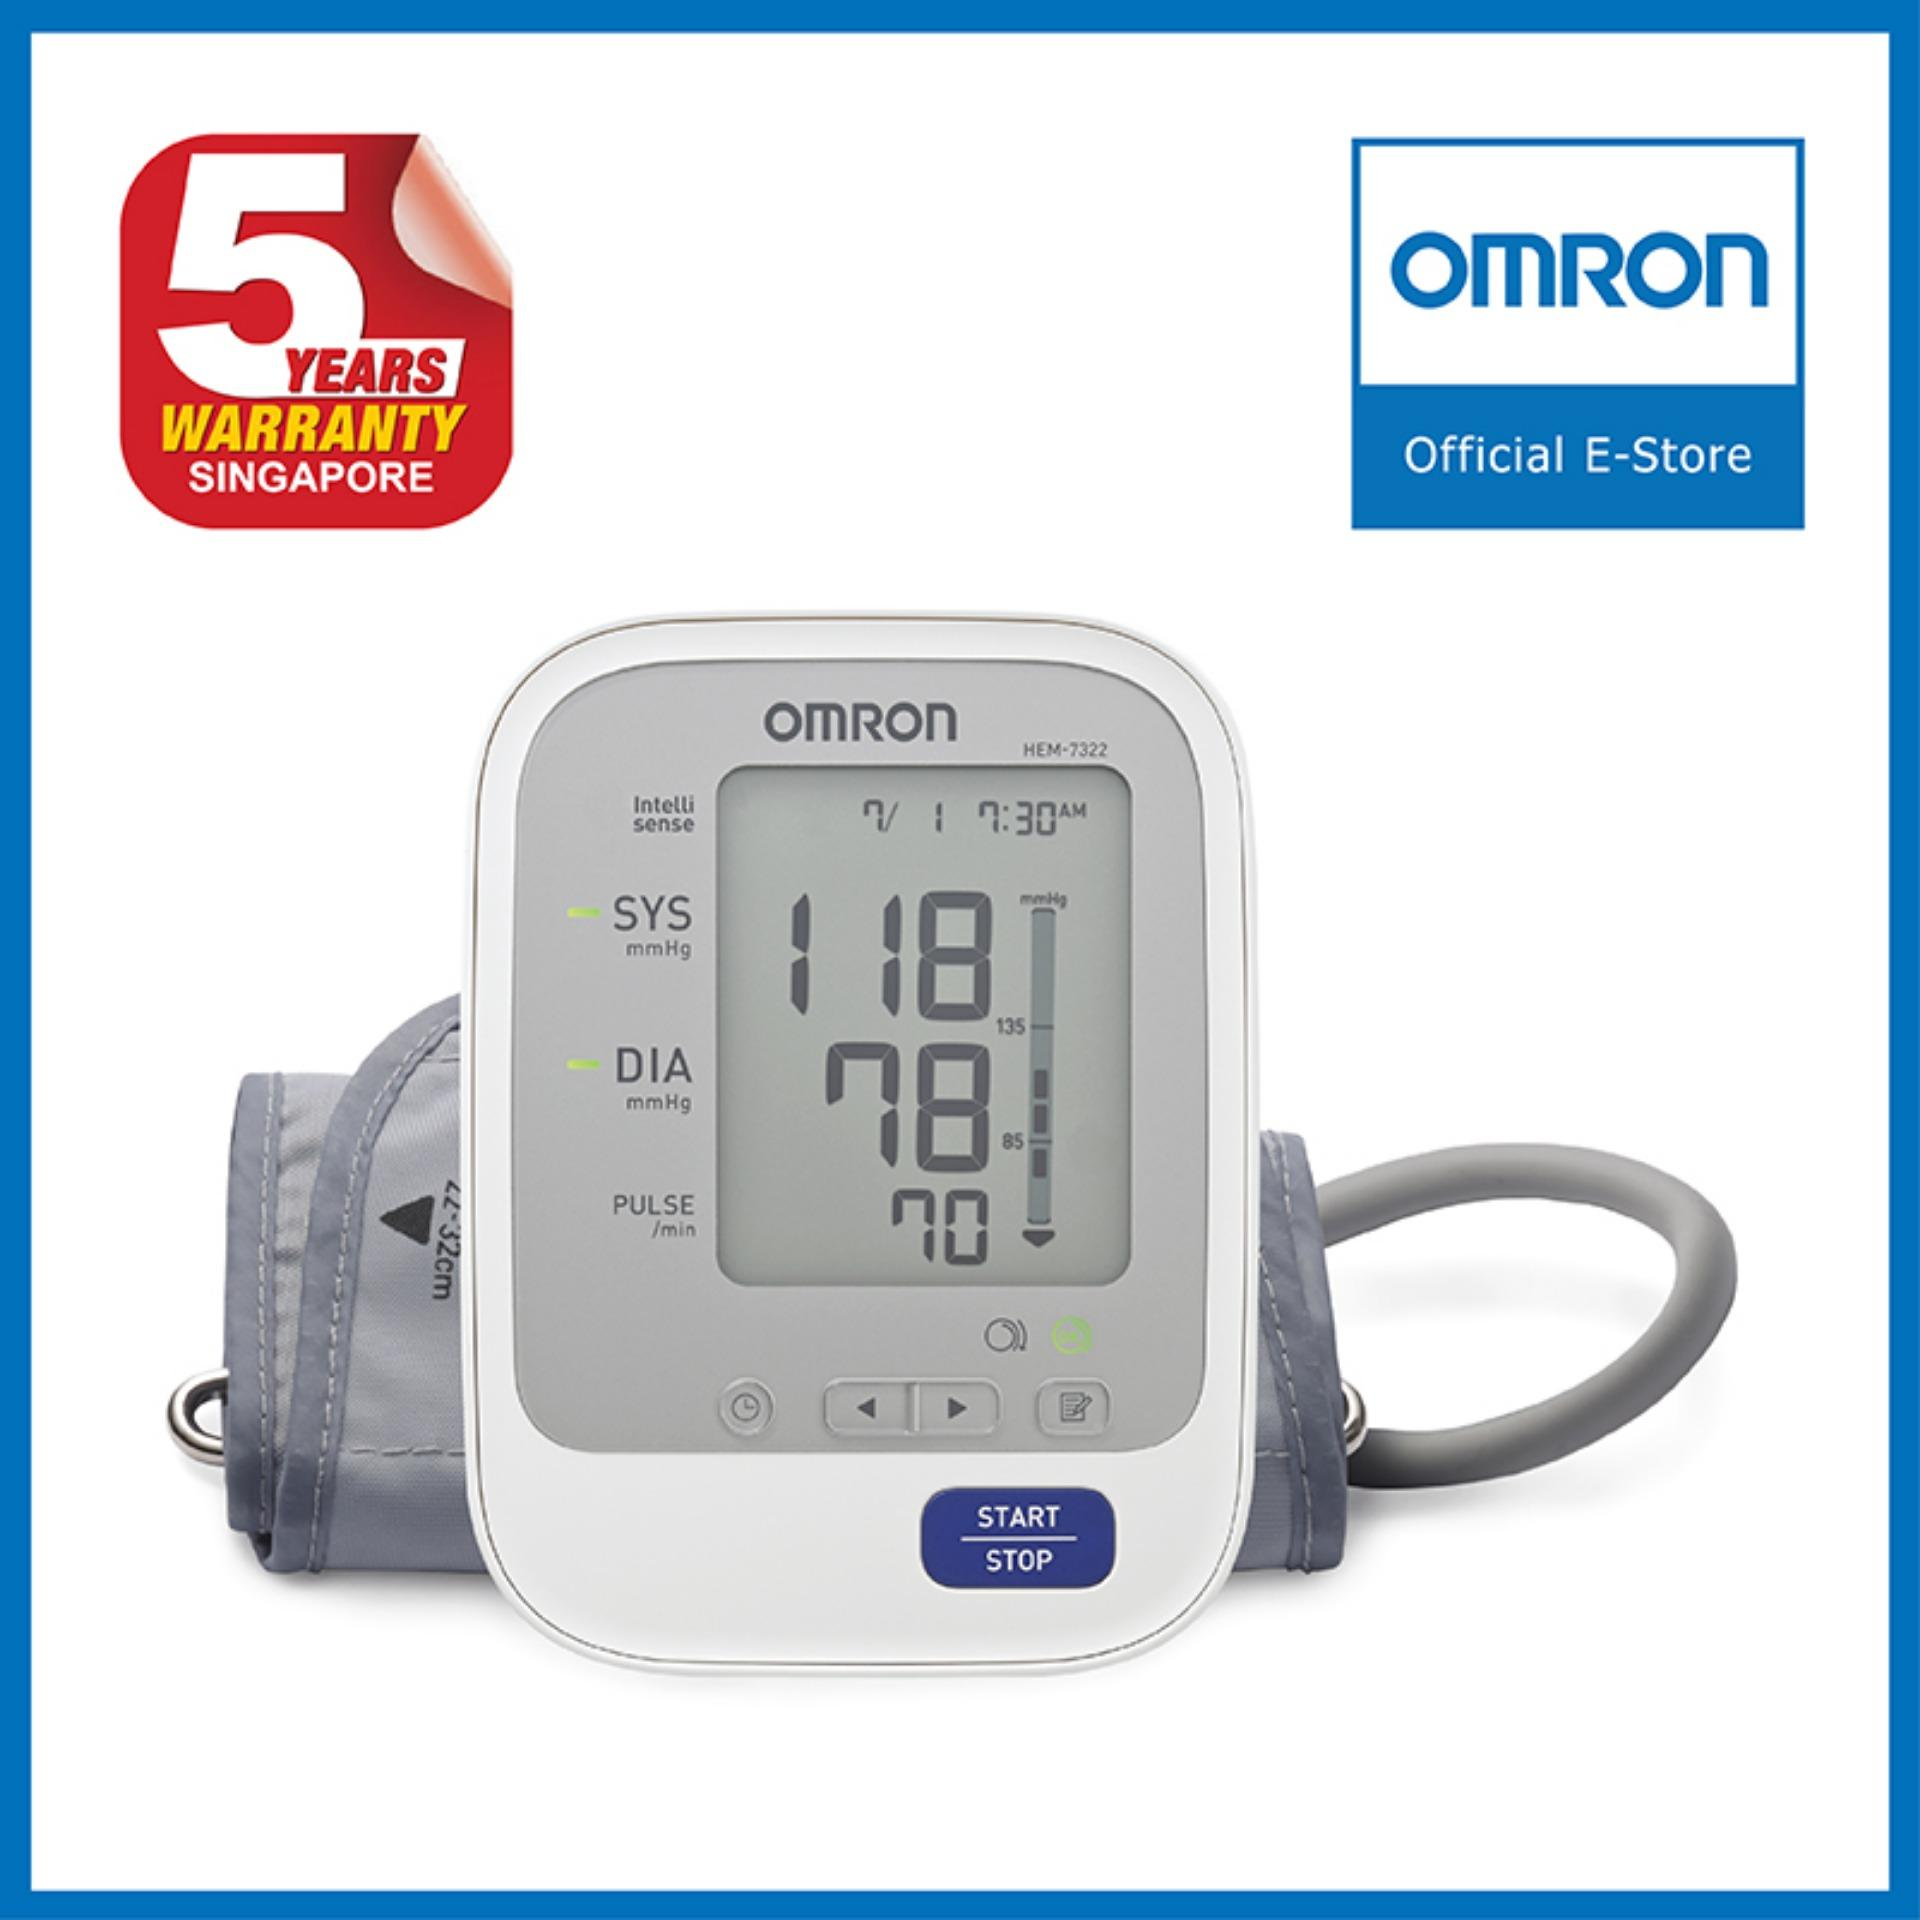 Who Sells The Cheapest Omron Upper Arm Blood Pressure Monitor Hem 7322 Online